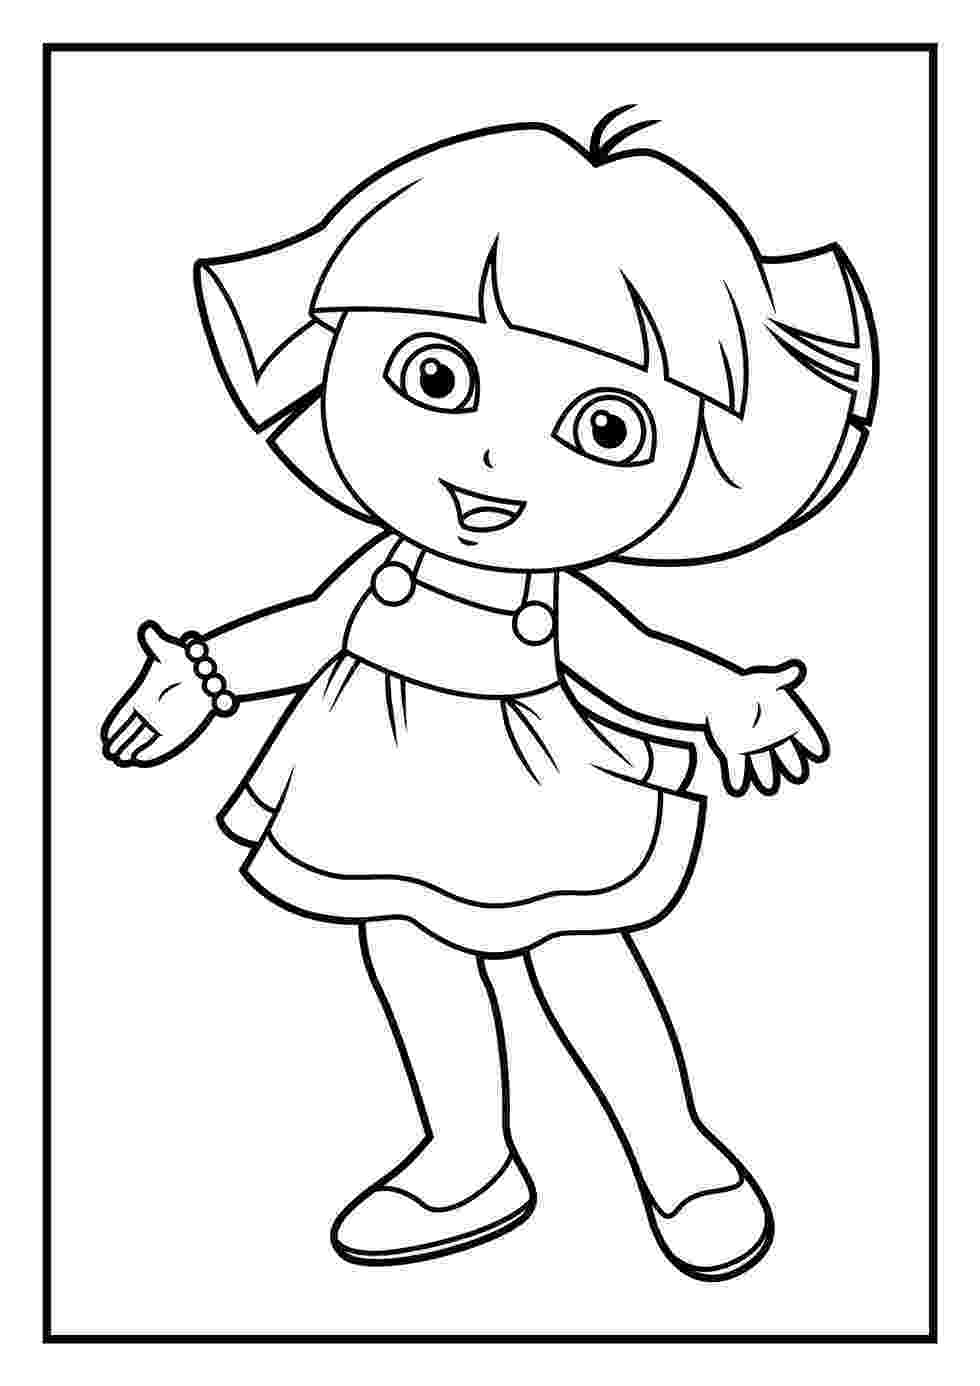 dora printing pages dora coloring pages diego coloring pages pages printing dora 1 1